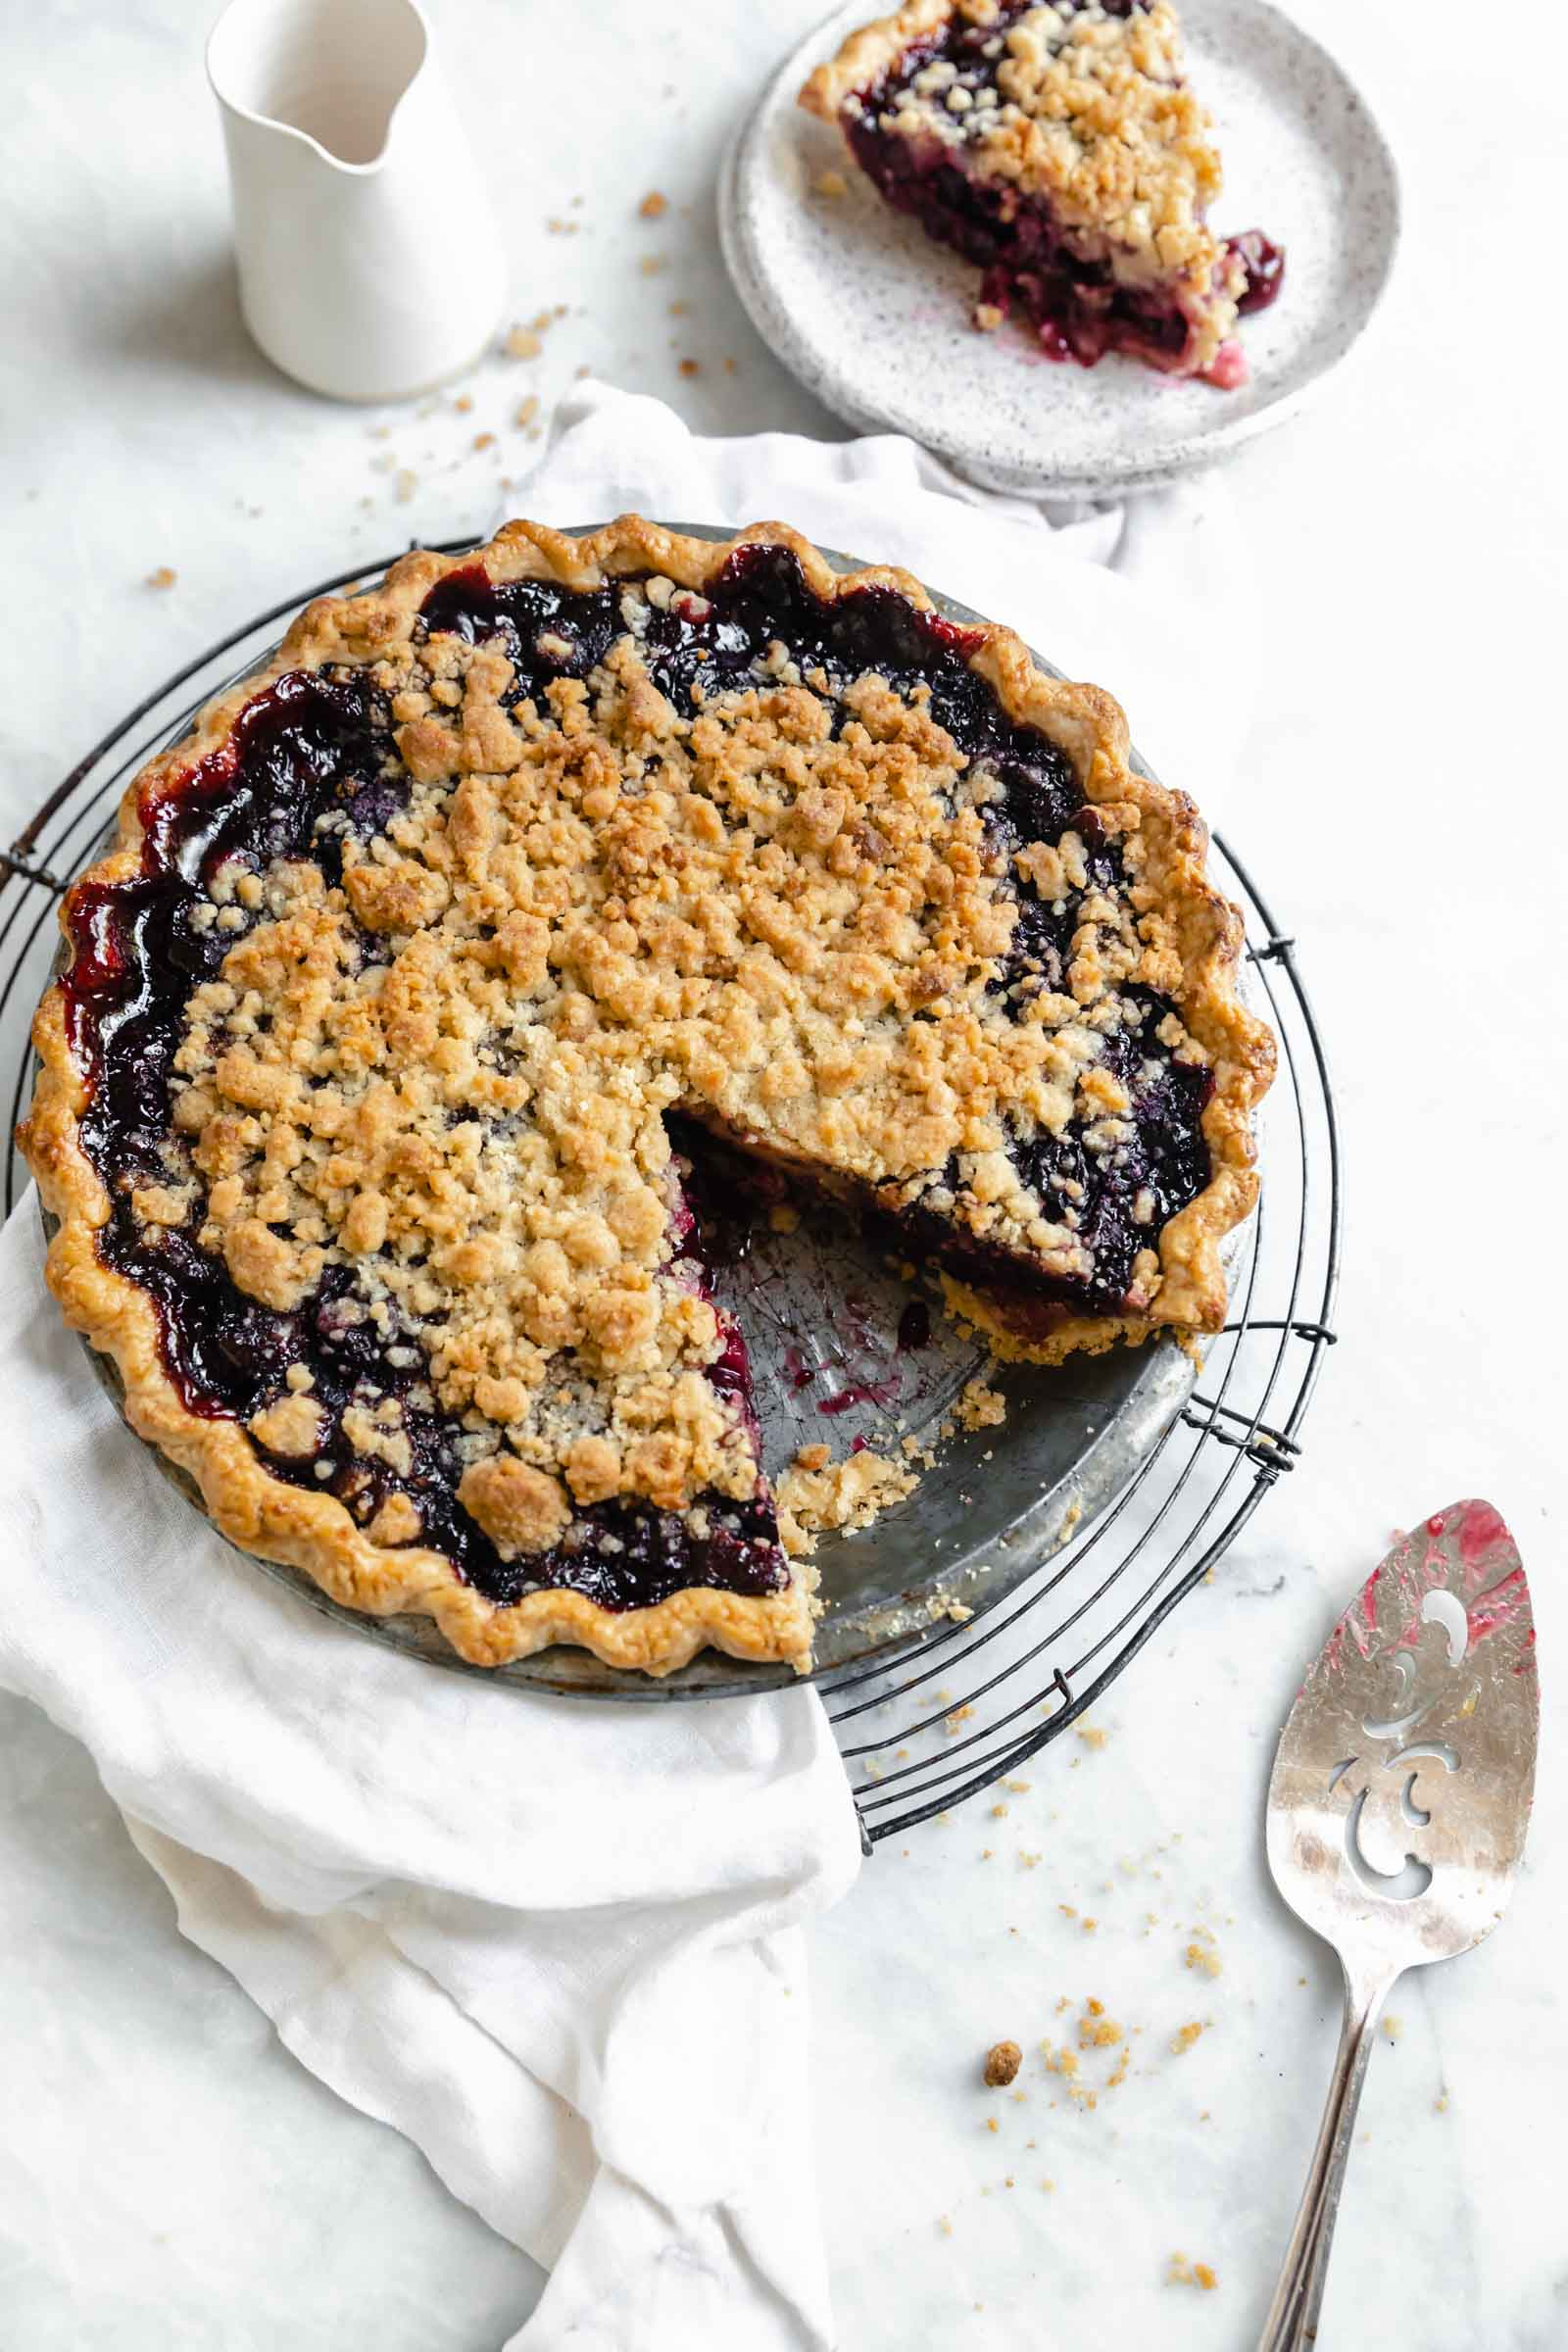 Introducing our favorite summer pie: Cherry Crumb Pie. A flaky pie crust filled with fresh cherries, and topped with crumble. The perfect cherry pie recipe!